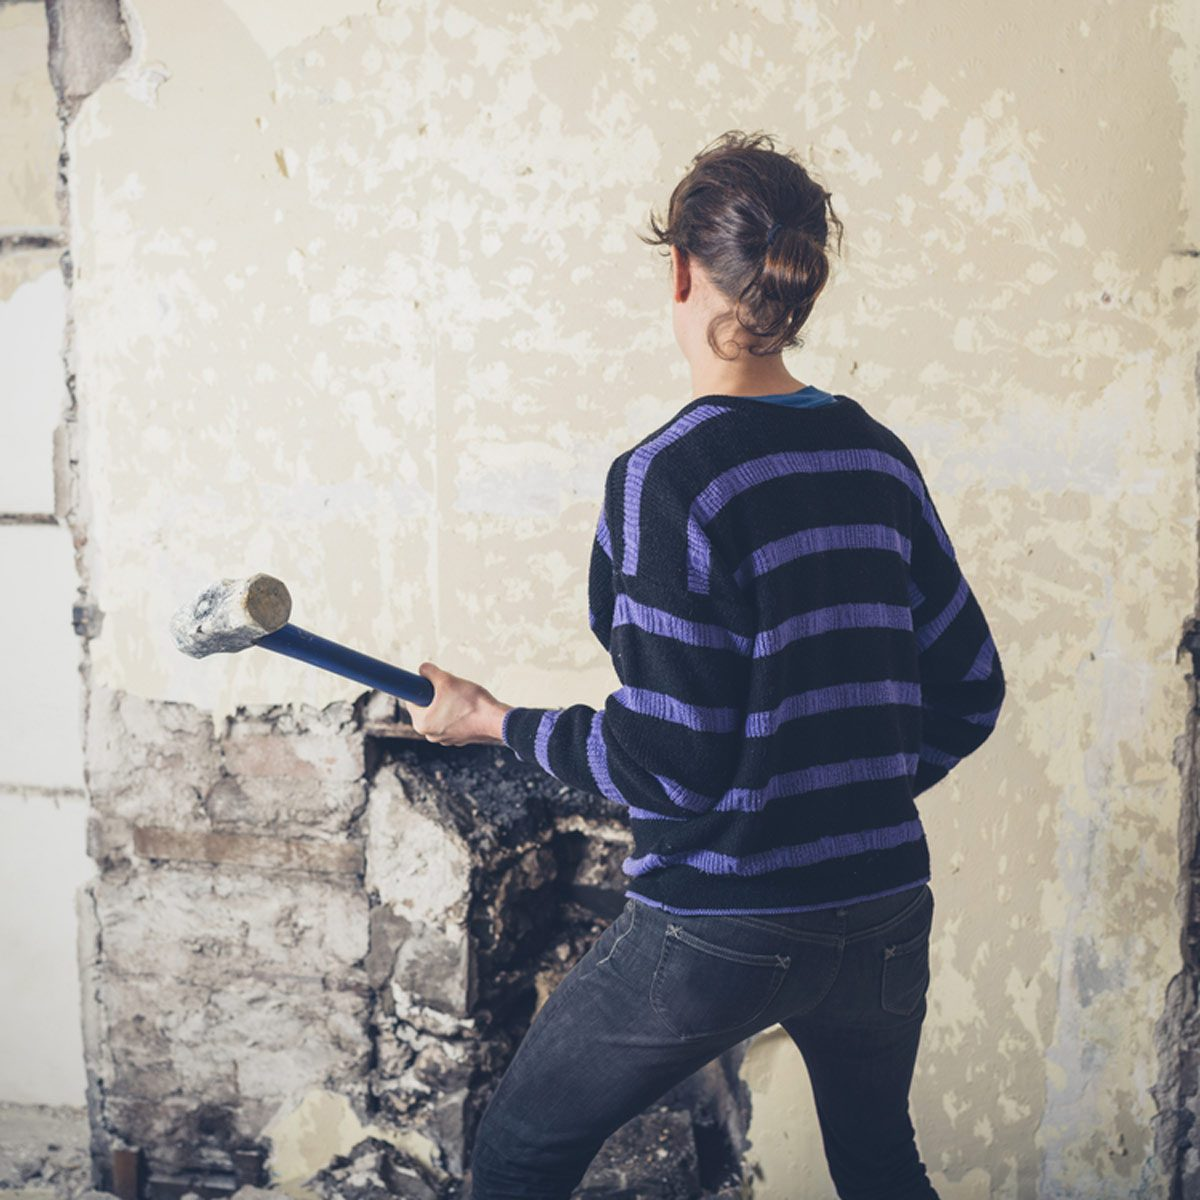 Woman with Sledgehammer Hand Tools for Demolition